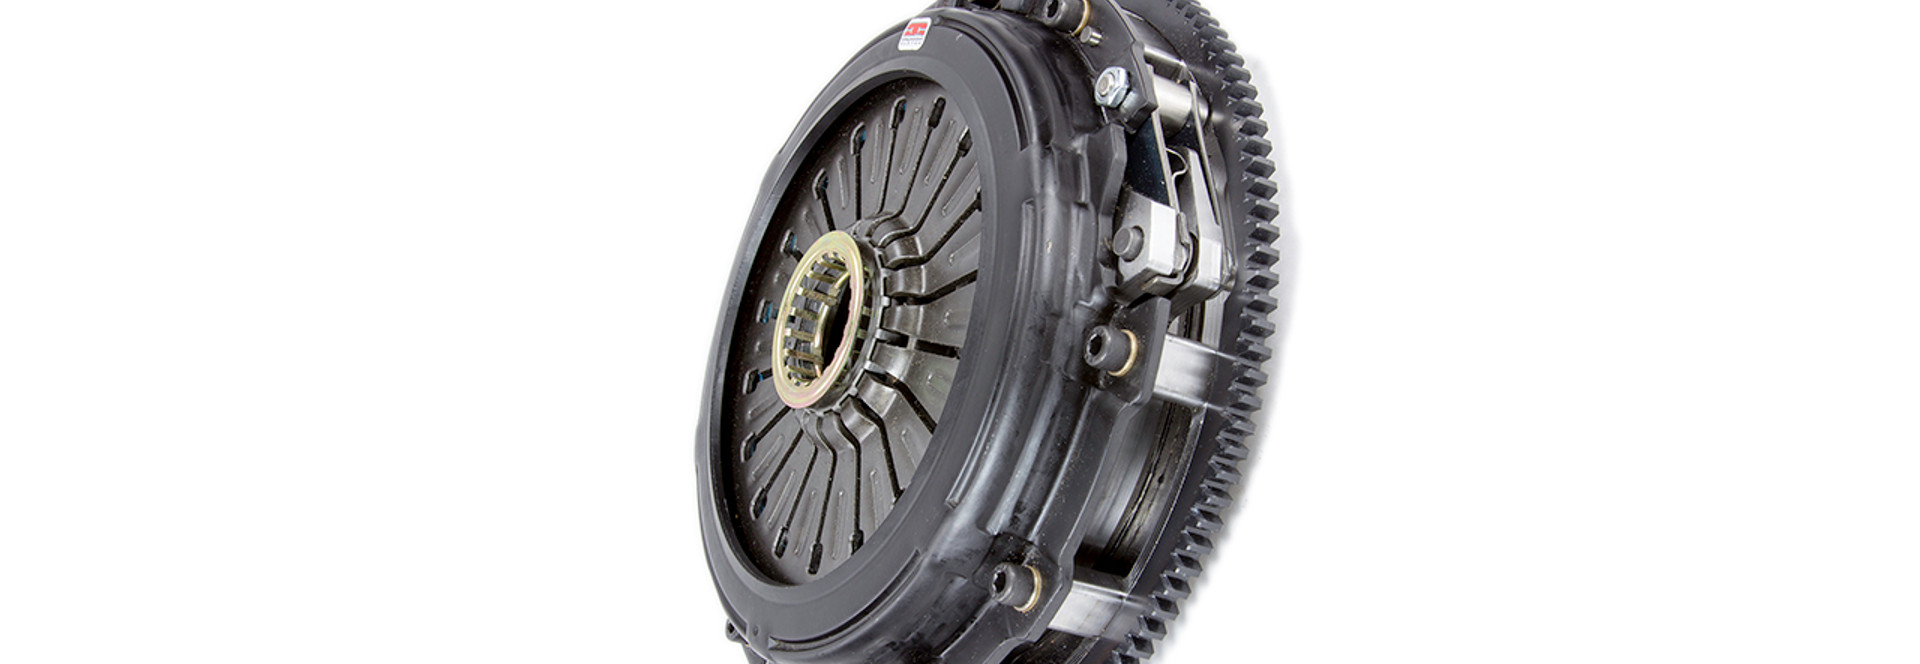 Organic Twin Disc Clutch Kits